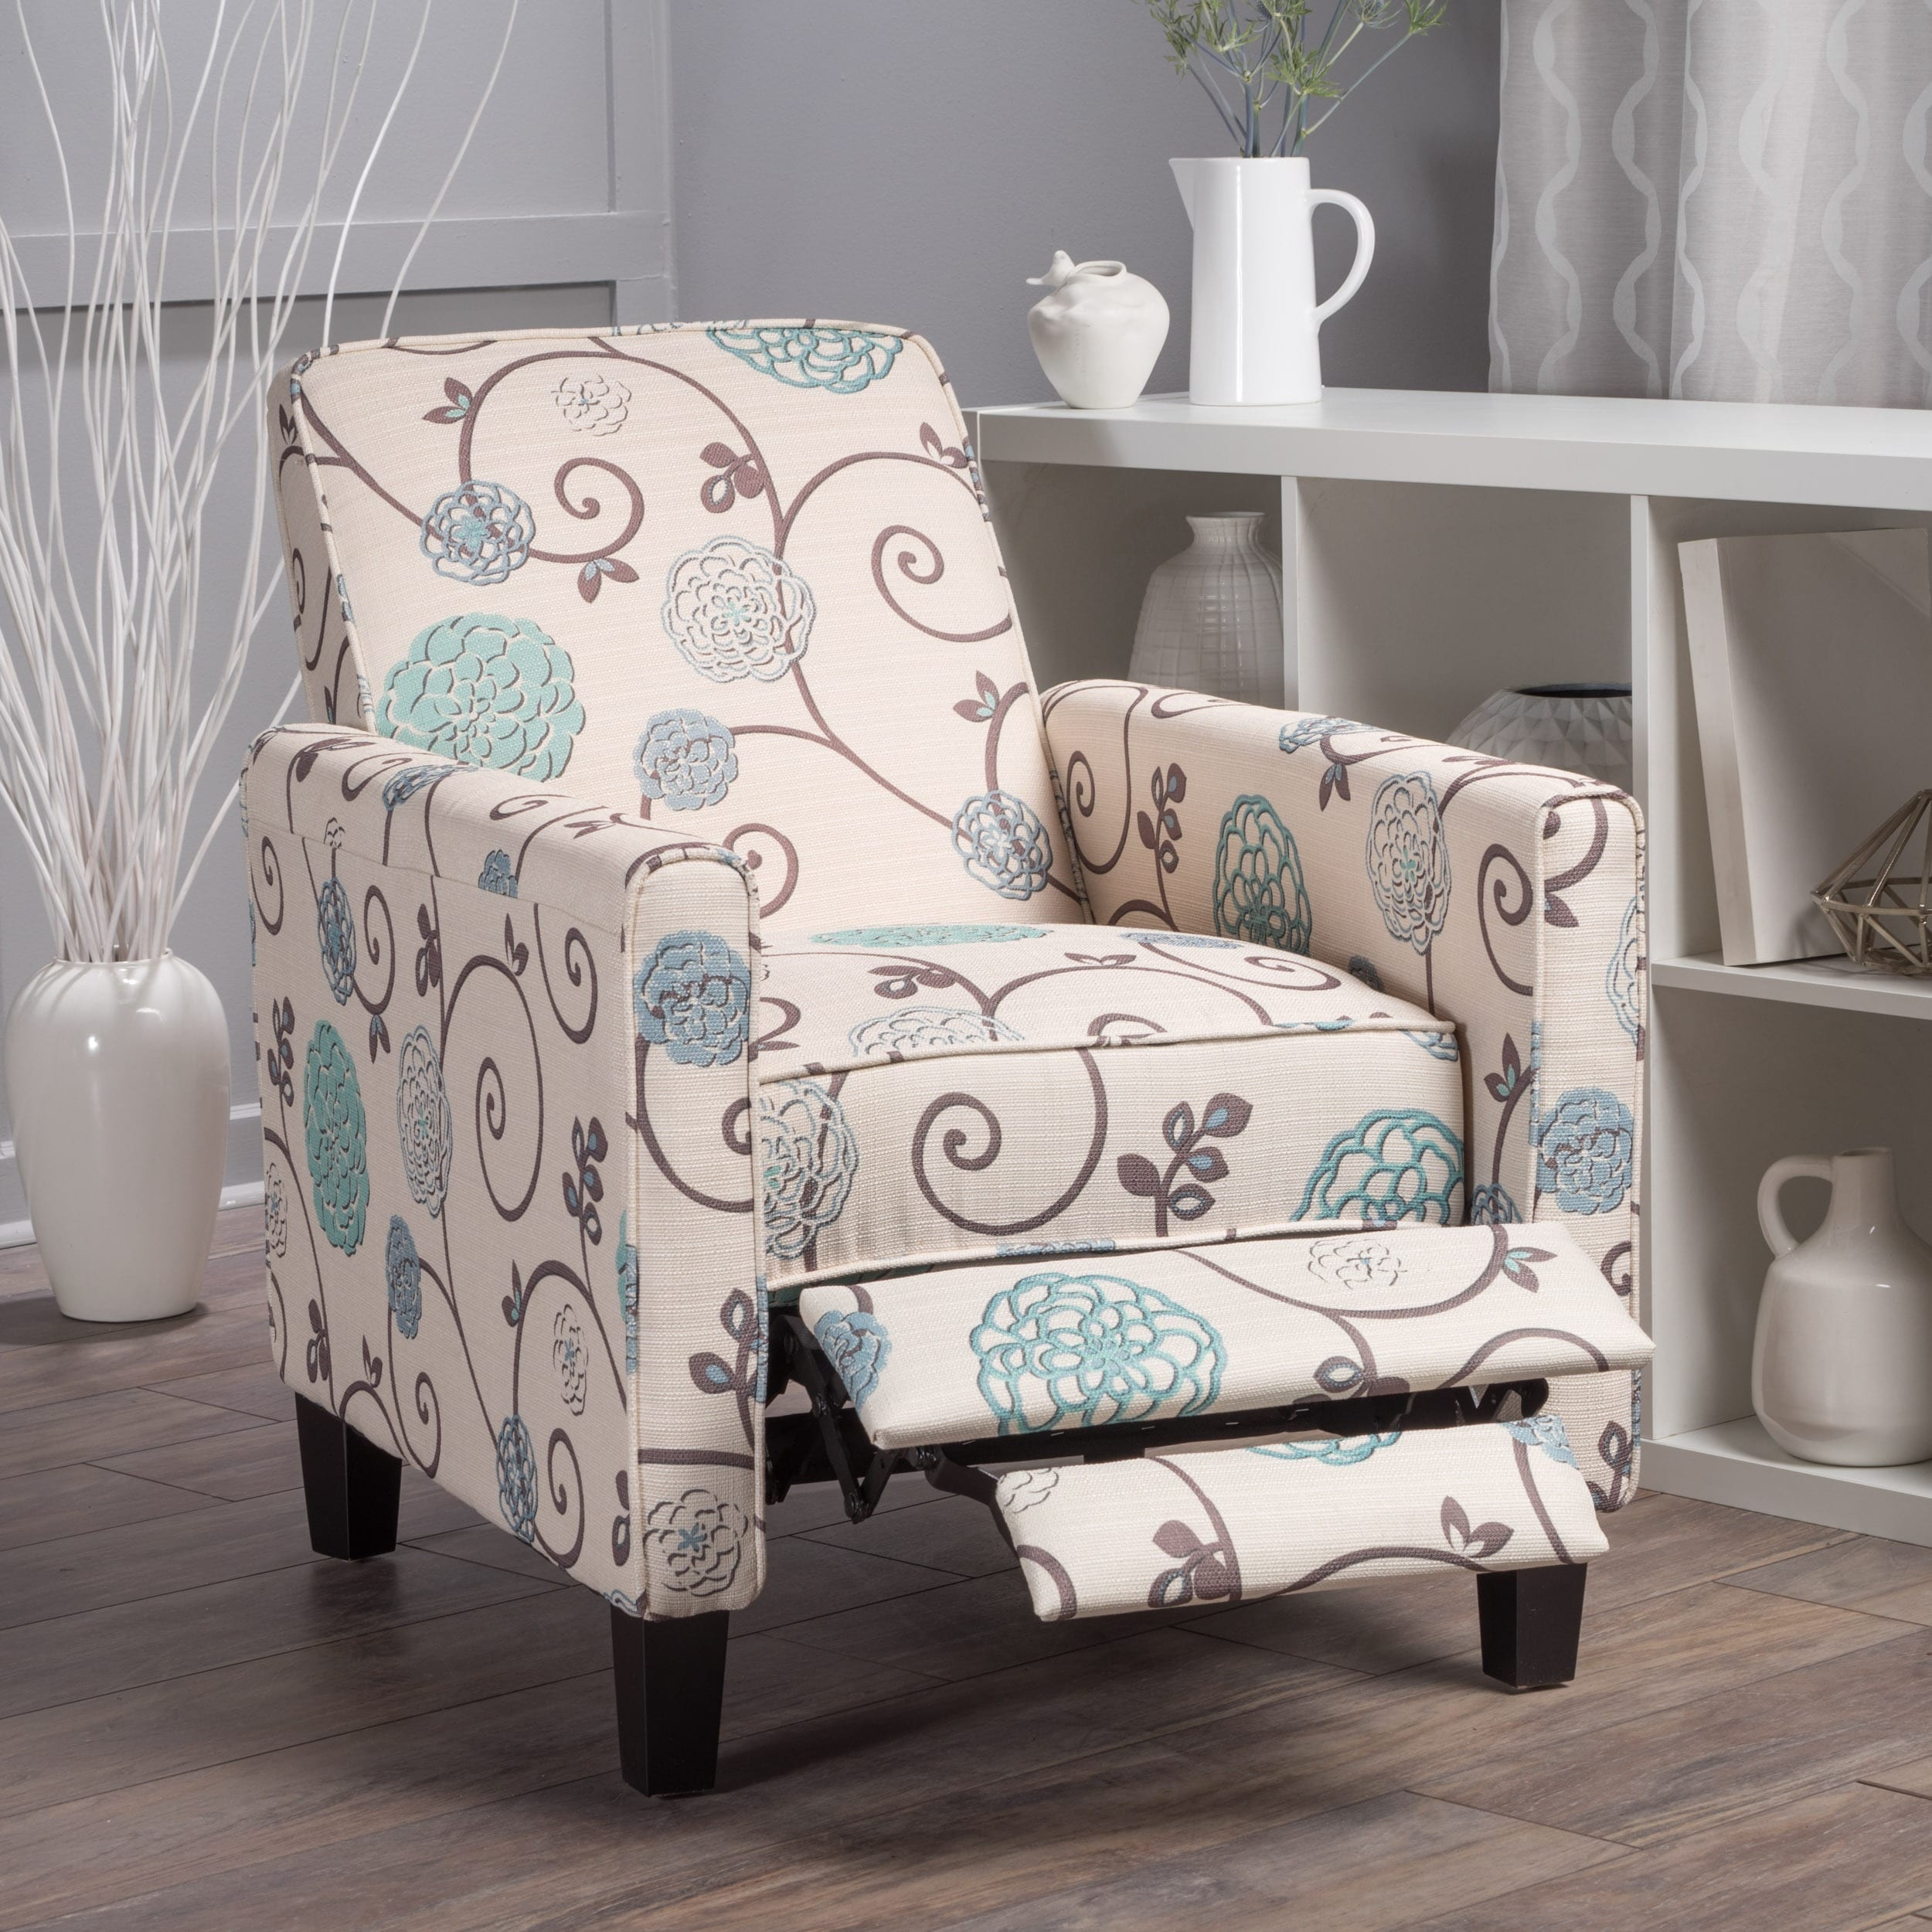 Overstock: Christopher Knight Home Darvis Floral Fabric Recliner Club Chair  For $186.13 + Free Shipping.